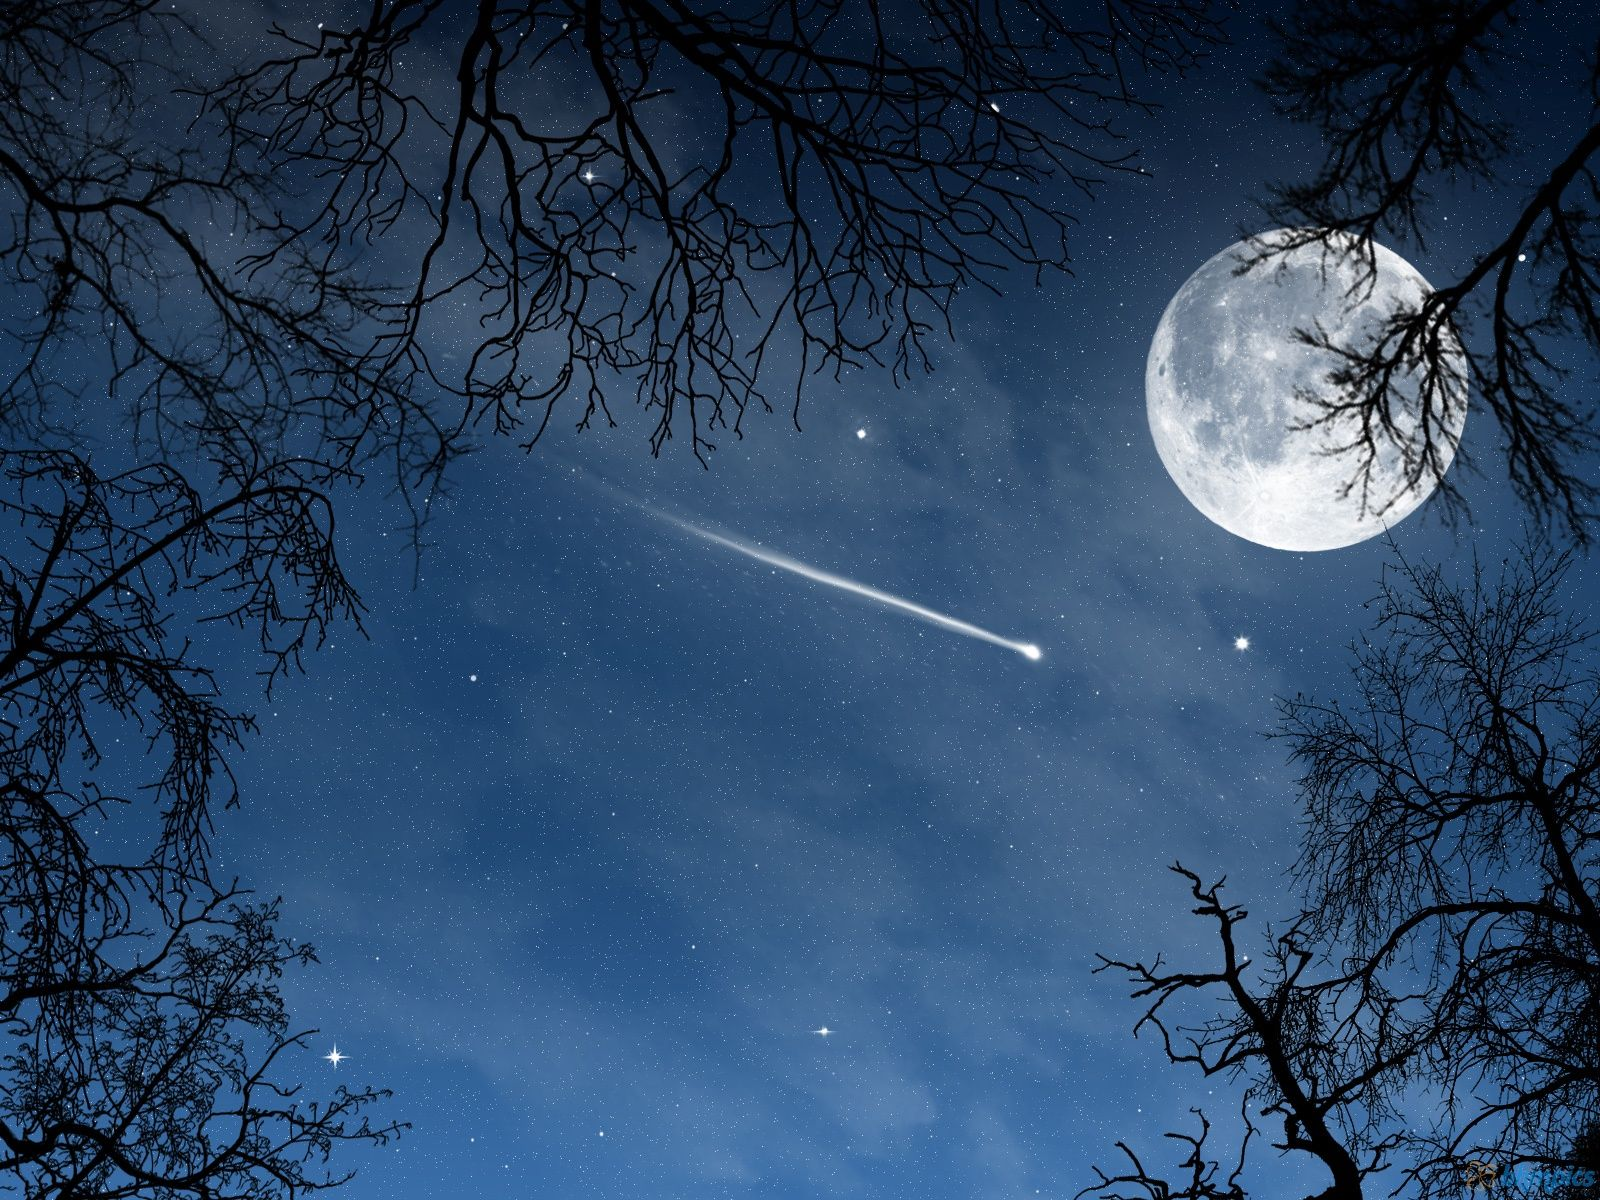 New Best Midnight Wallpapers Moon And Stars Wallpaper Night Sky Wallpaper Moon Pictures